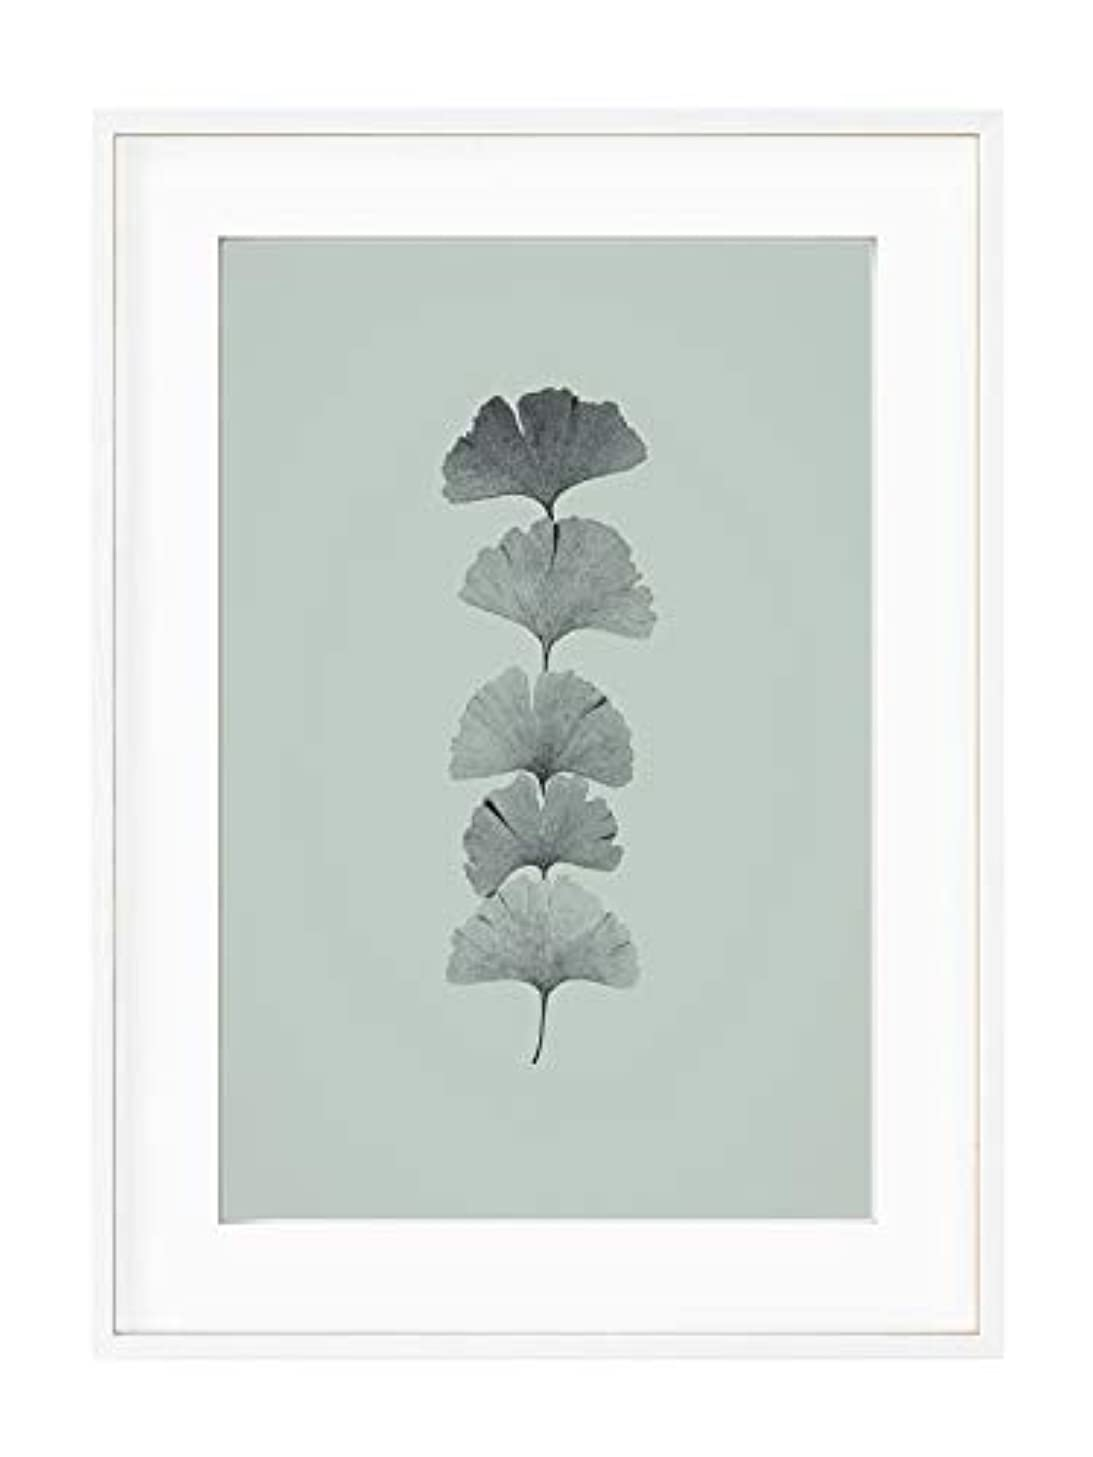 Ginko 2 White Varnished Wooden Frame with Mount, Multicolored, 40x50